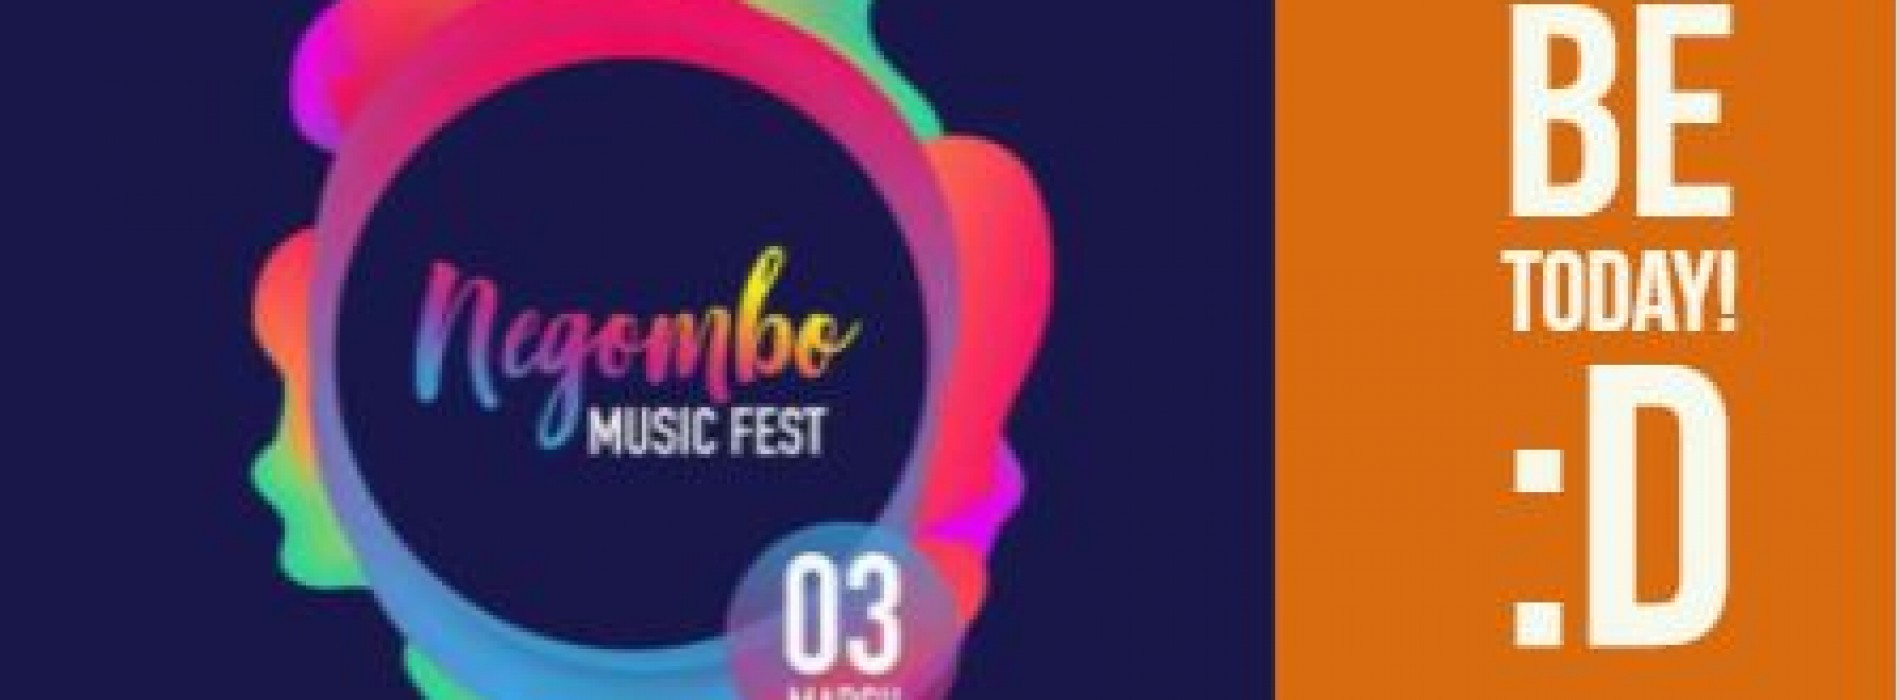 The Negombo Music Festival Is On Today!